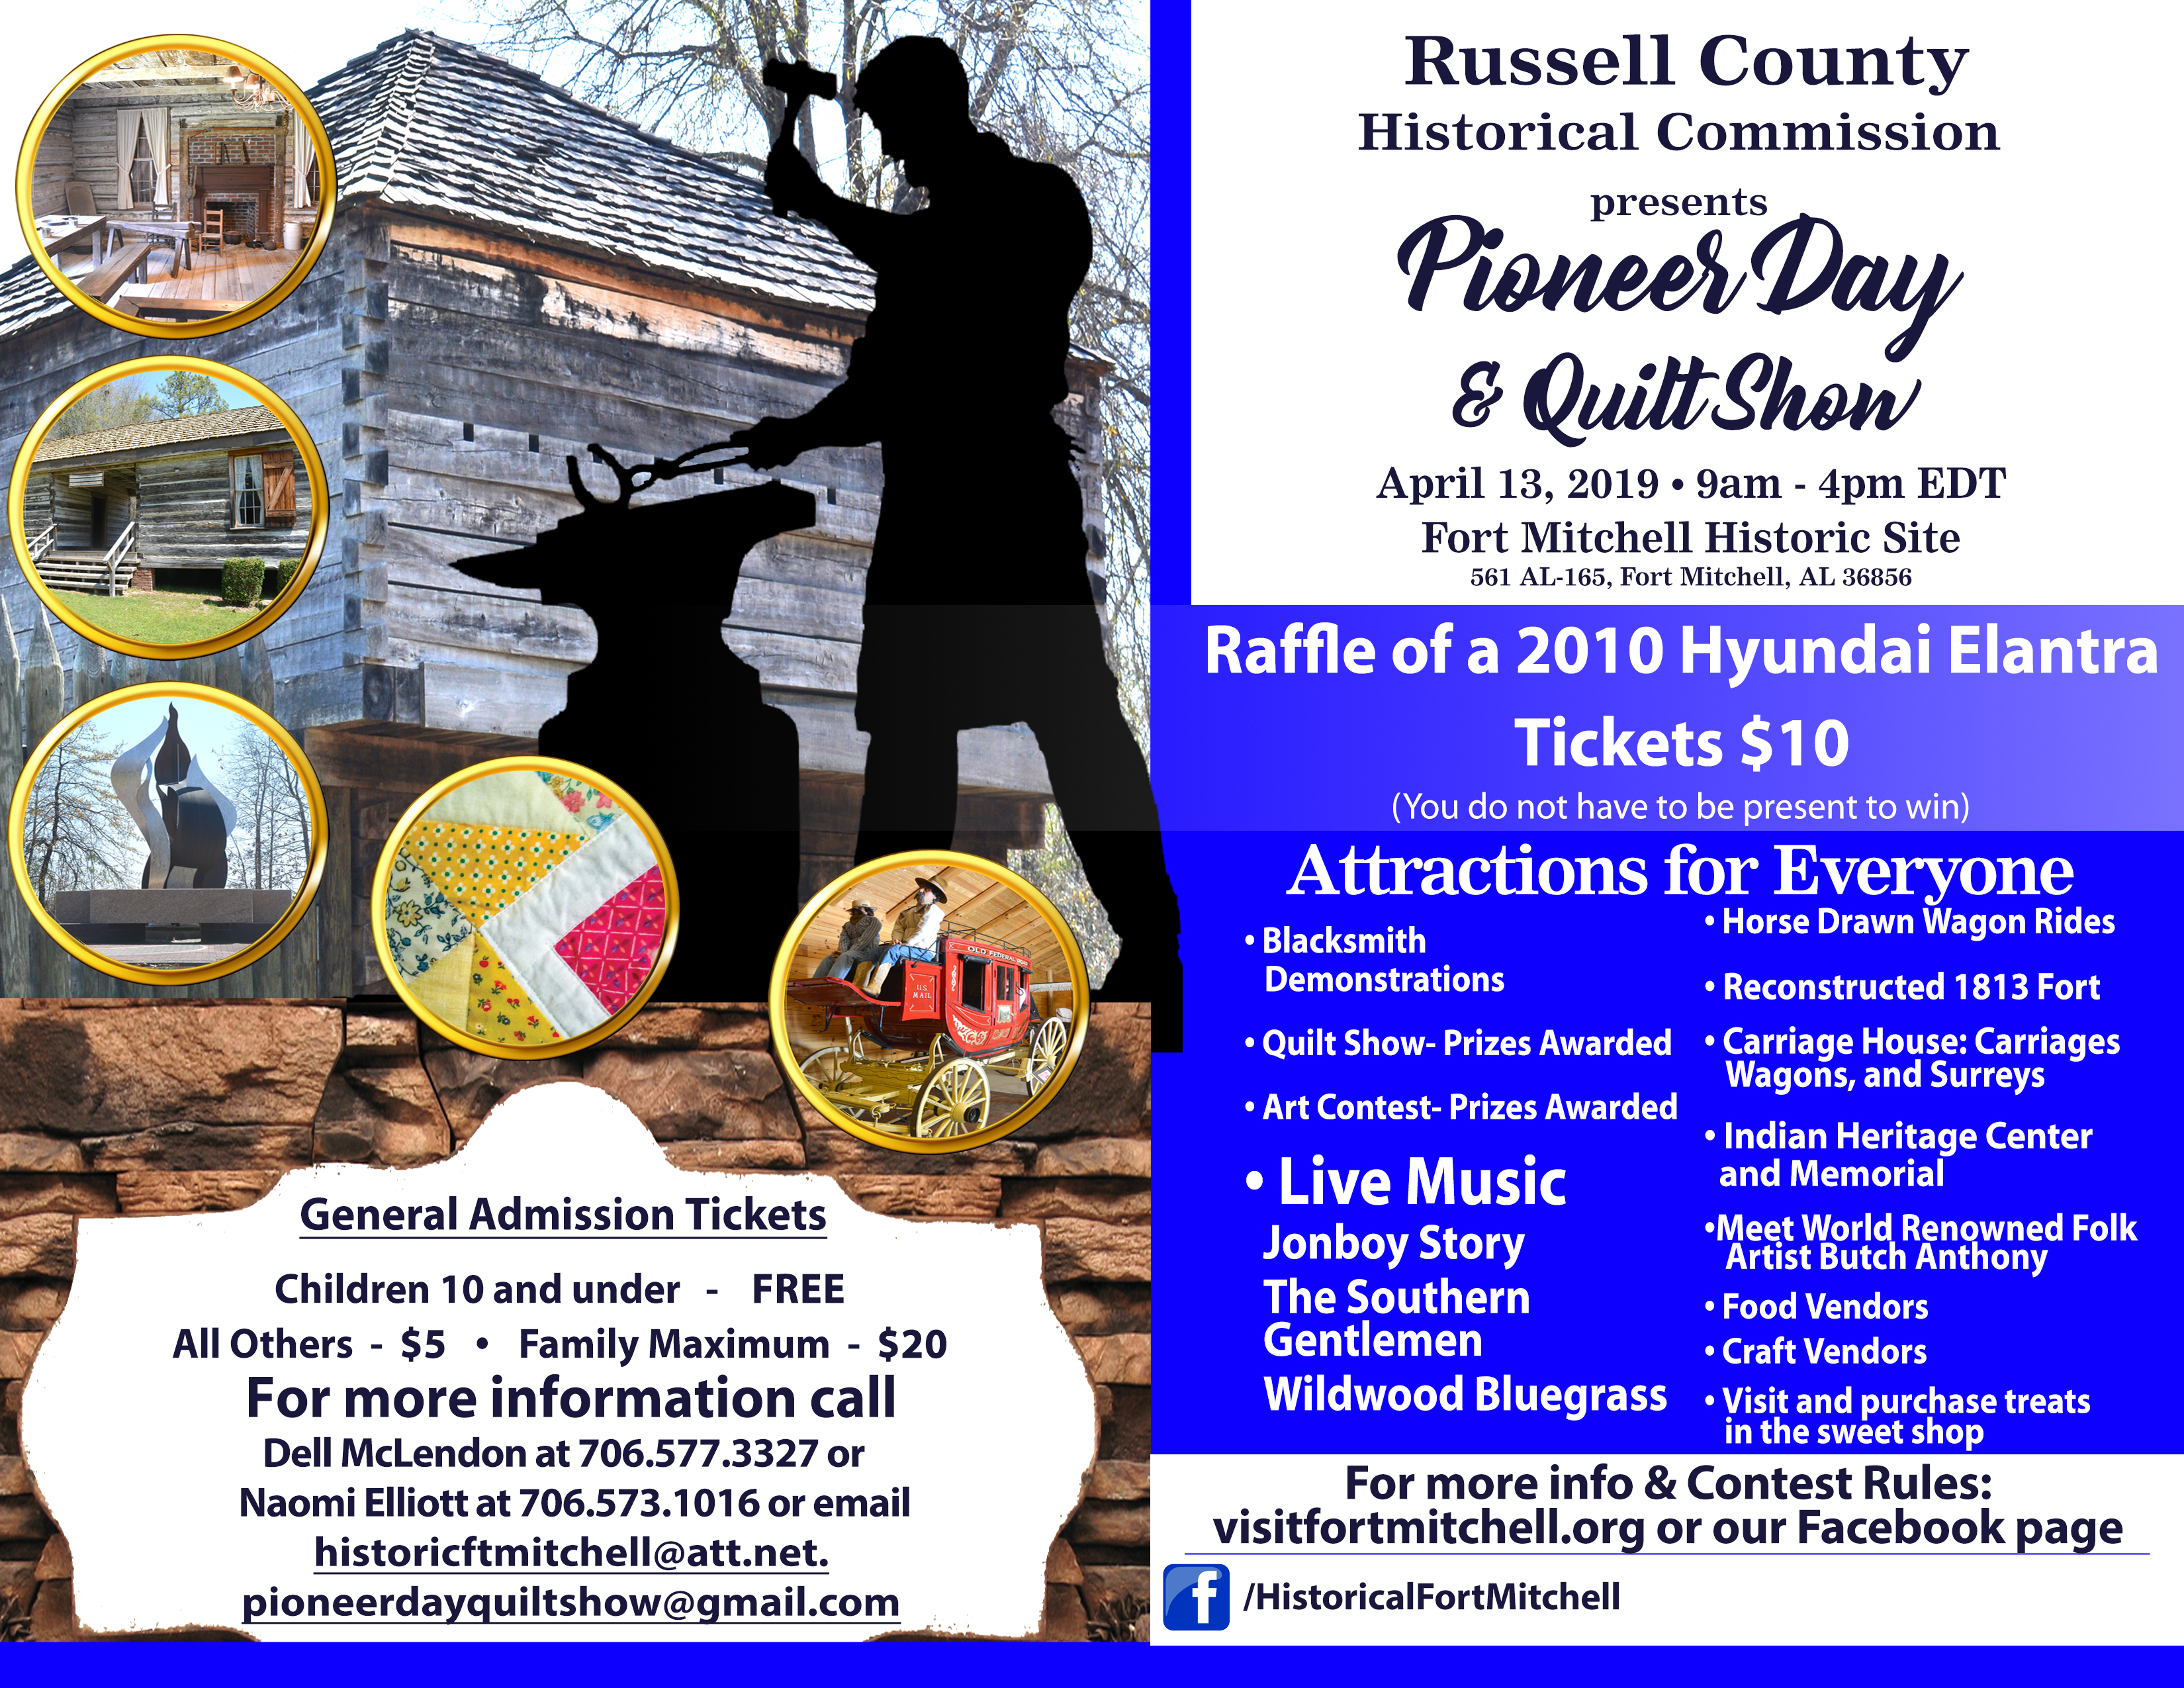 //visitfortmitchell.org/wp-content/uploads/2019/04/RCHC-Pioneer-Day-Flyer-2019-Full.jpg